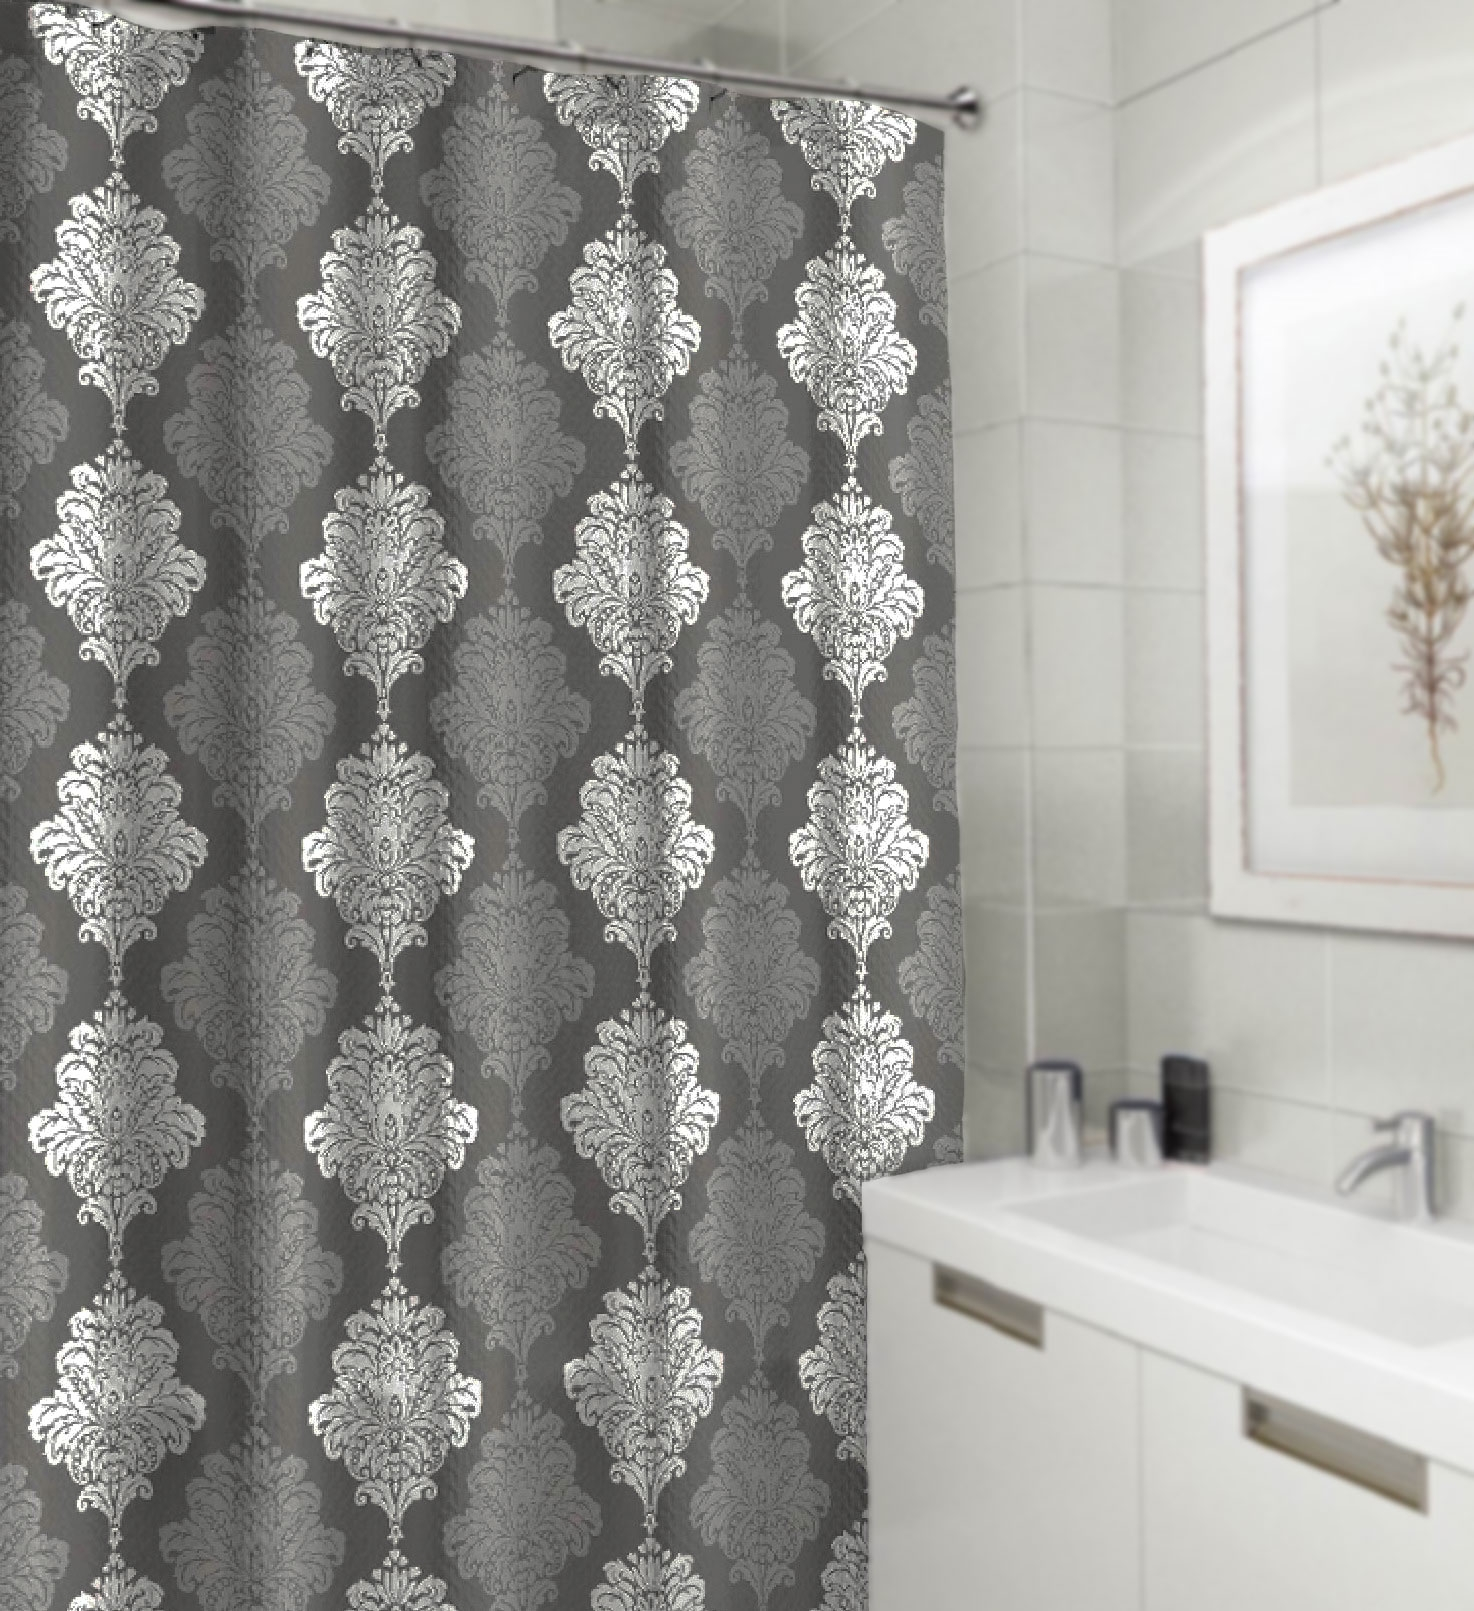 Shower Curtain Gray and White Damask Textured Fabric Decorative Bathroom